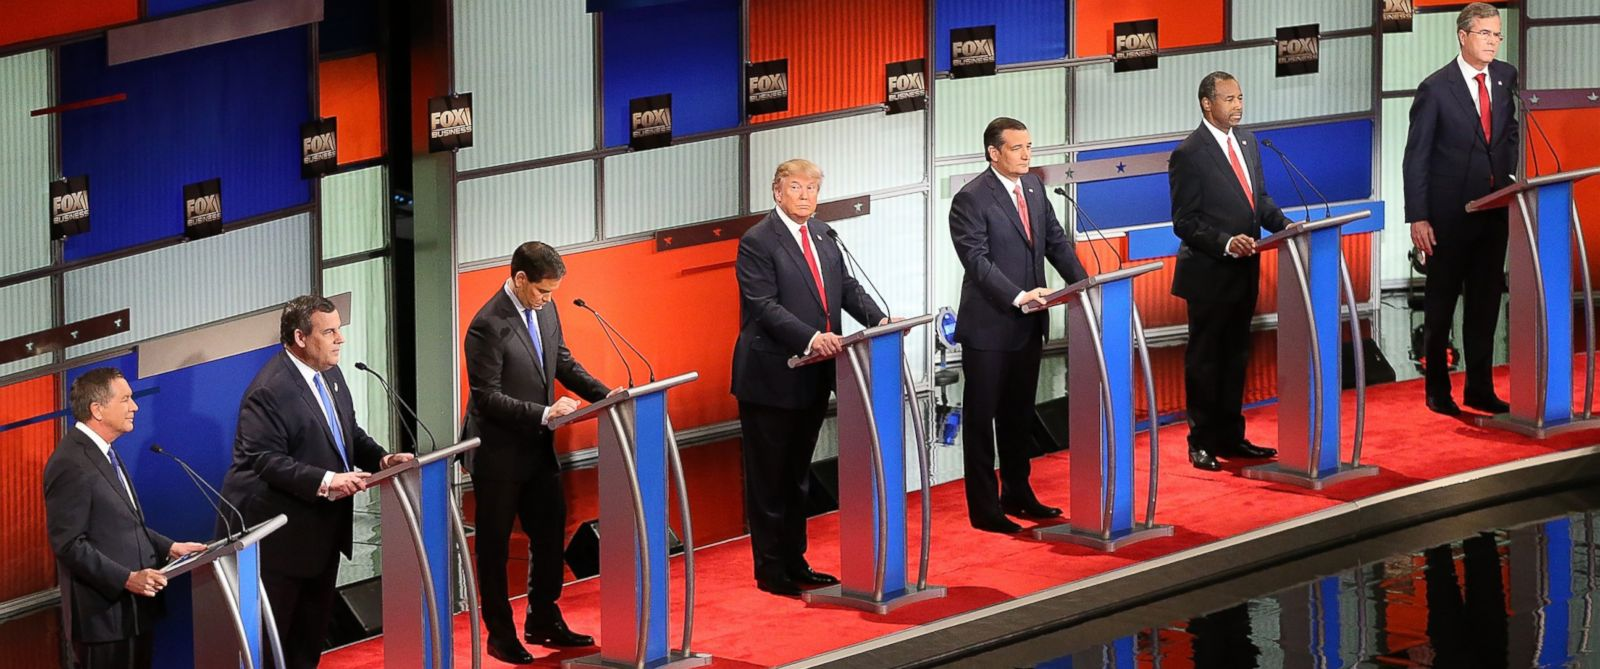 PHOTO: Republican presidential candidates Ohio Gov. John Kasich, New Jersey Gov. Chris Christie, Sen. Marco Rubio, Donald Trump, Sen. Ted Cruz, Ben Carson and Jeb Bush at the Republican presidential debate on Jan. 14, 2016, in North Charleston, S.C.